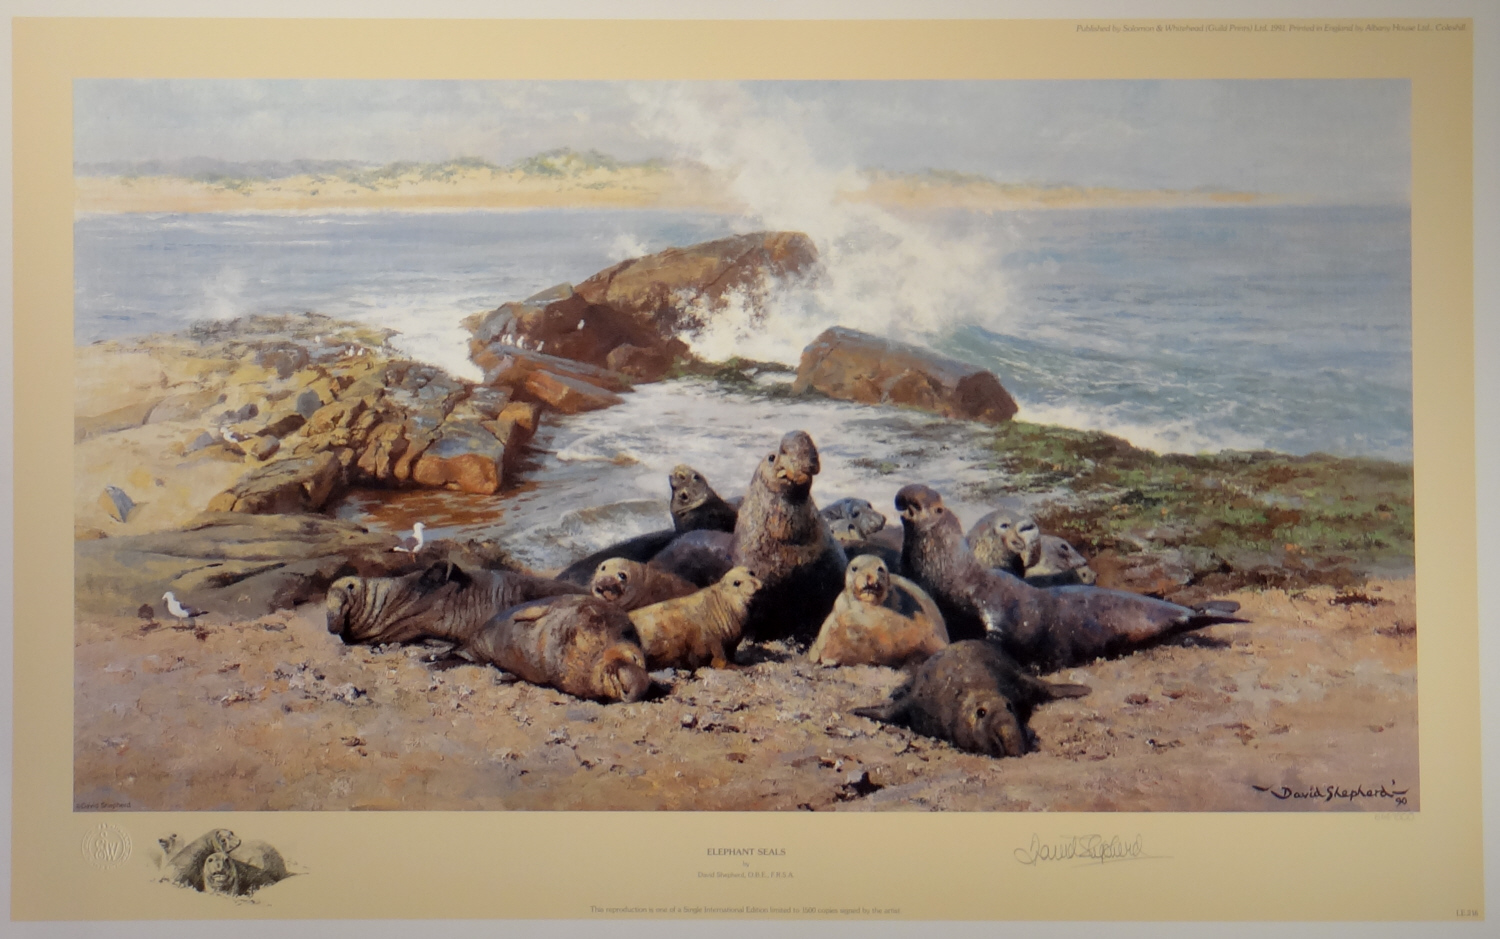 david shepherd, Elephant Seals, signed limited edition print